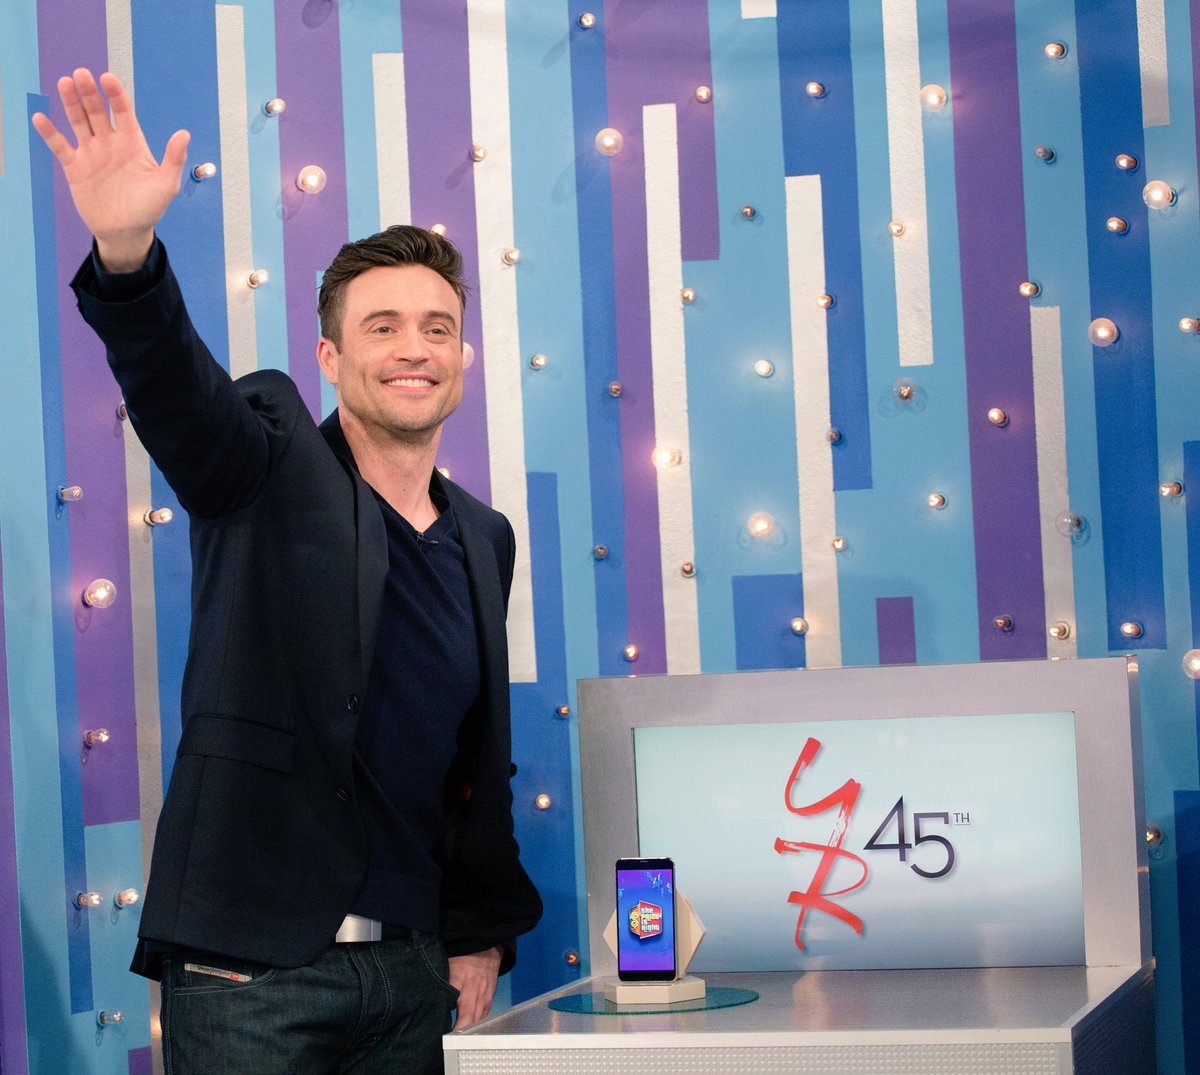 """Звезды The Young and the Restless на шоу """"The Price Is Right"""" 2018 DZM888OU0AE5z7O"""